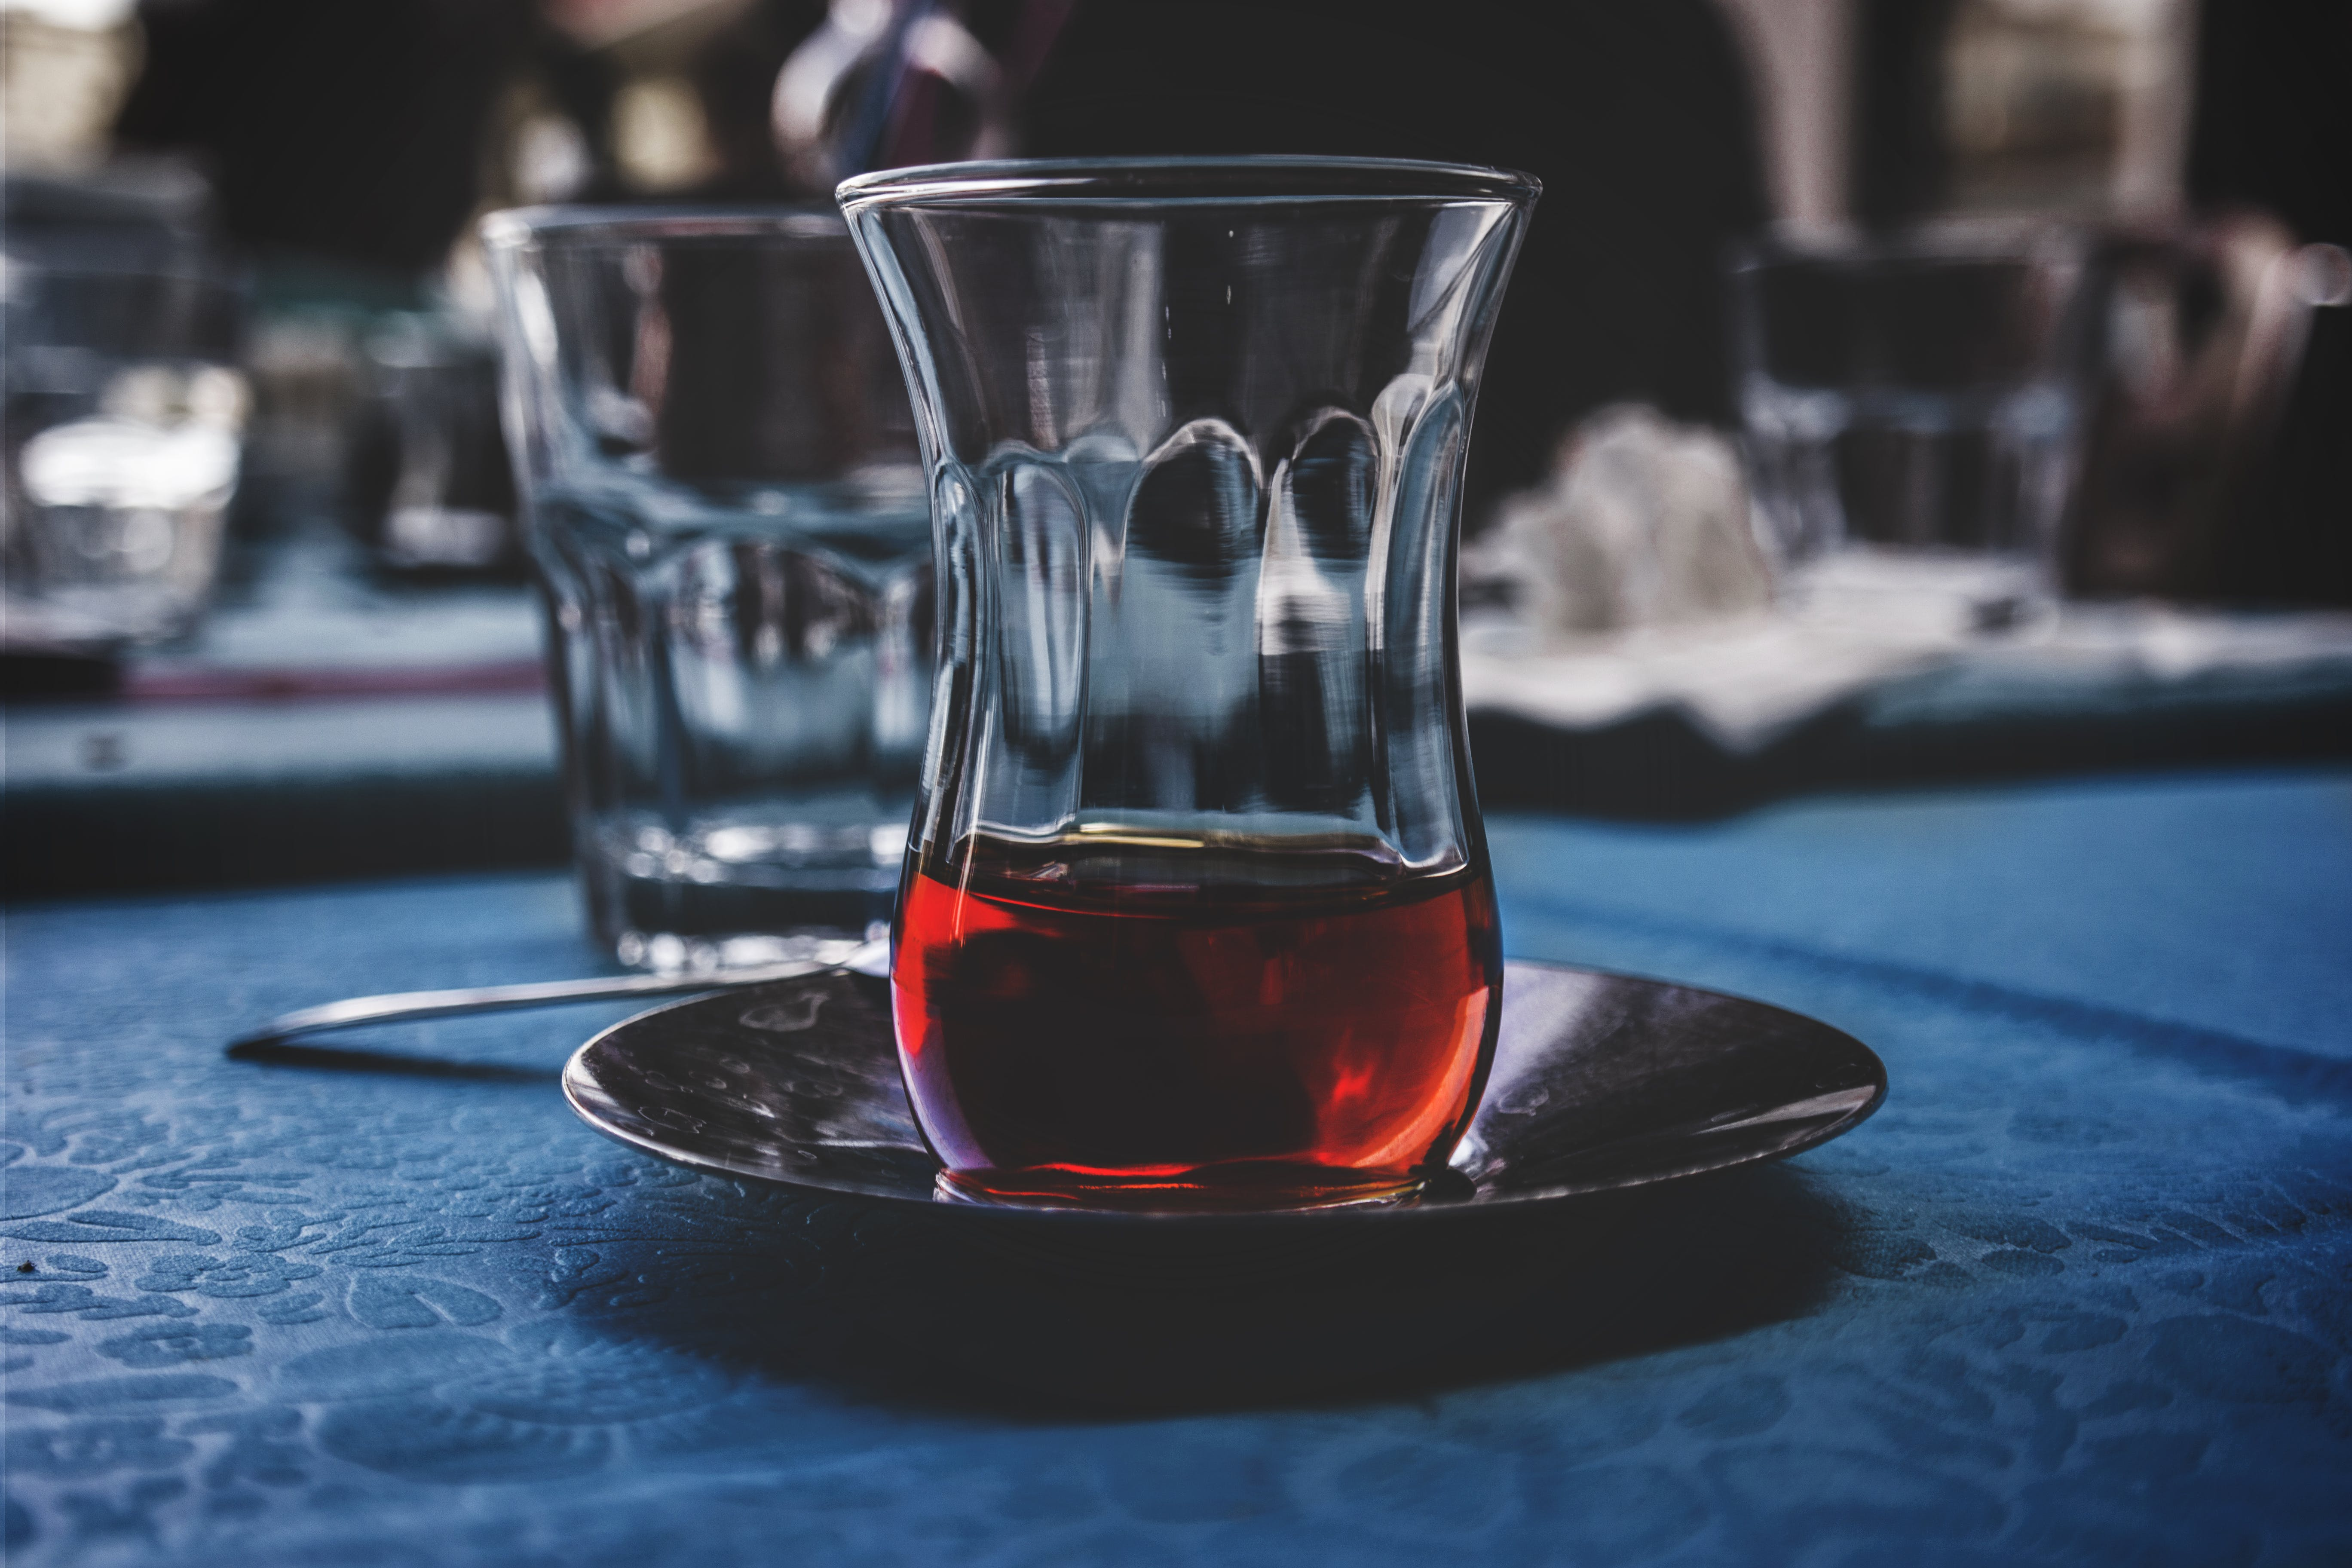 Close Up Photo of Drinking Glass With Beverage